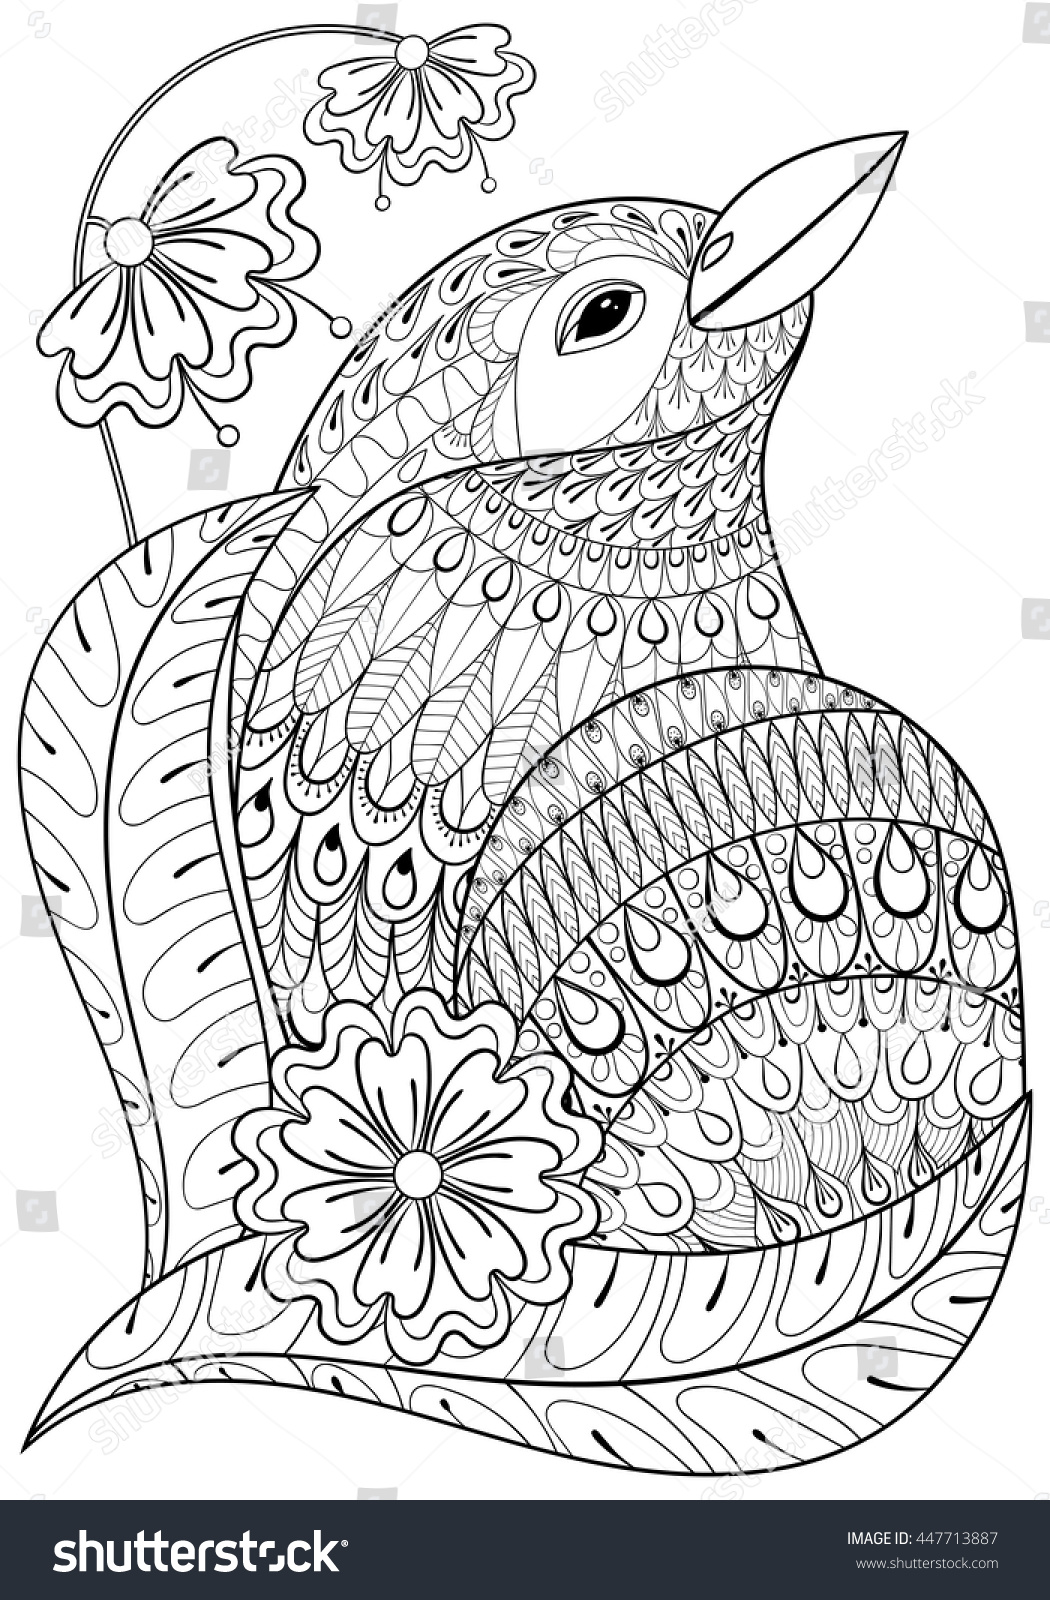 Zentangle Exotic Bird In Flowers Hand Drawn Ethnic Animal For Adult Coloring Pages T